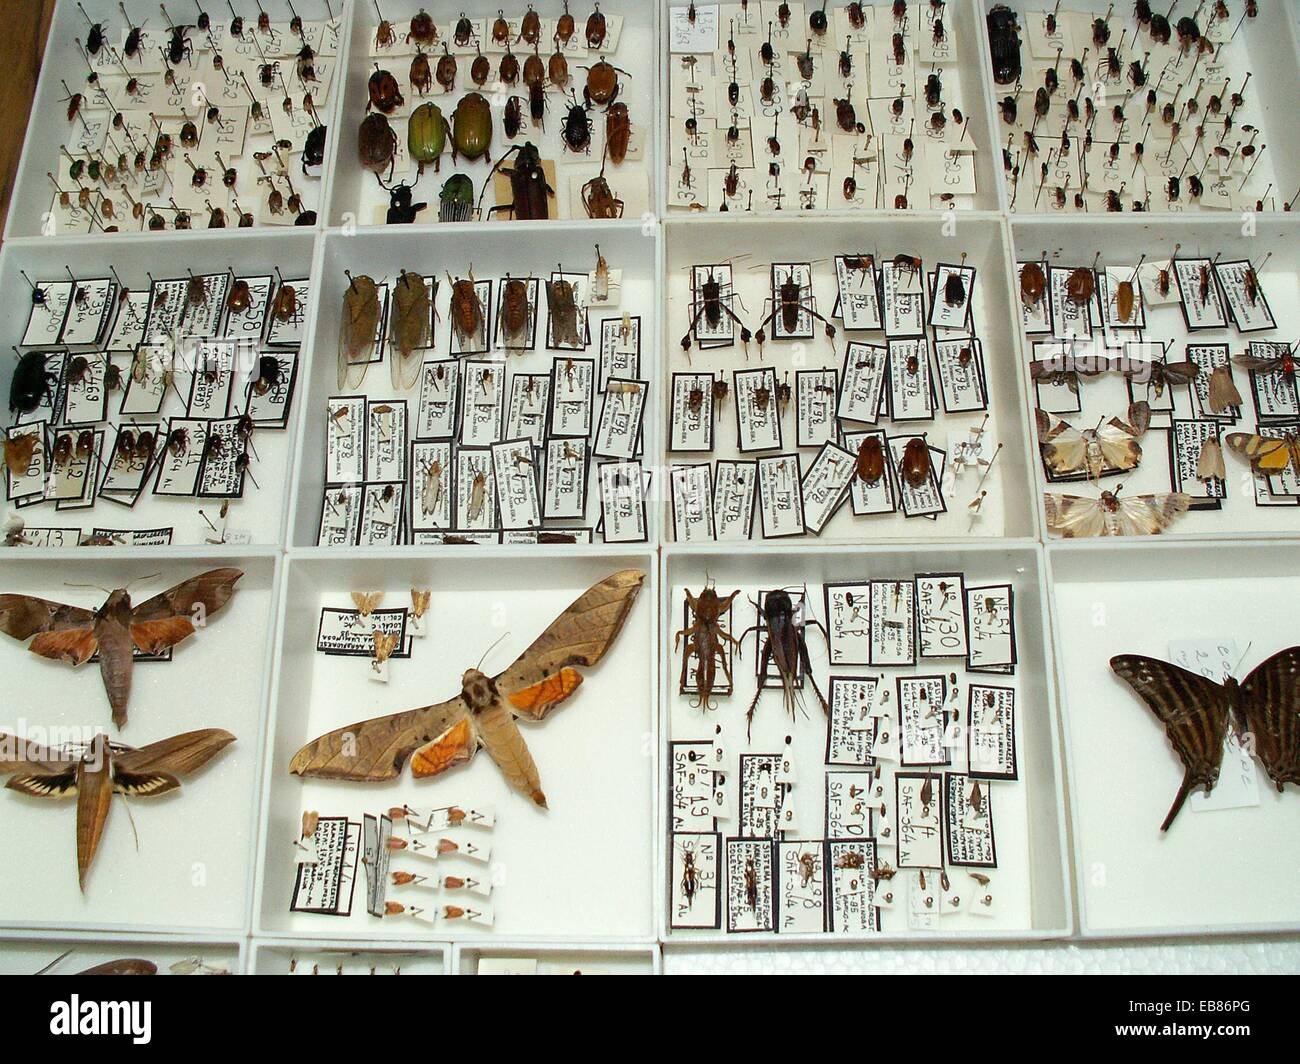 Insects pinned in small unity trays, Acre, Brazil, 2009 - Stock Image